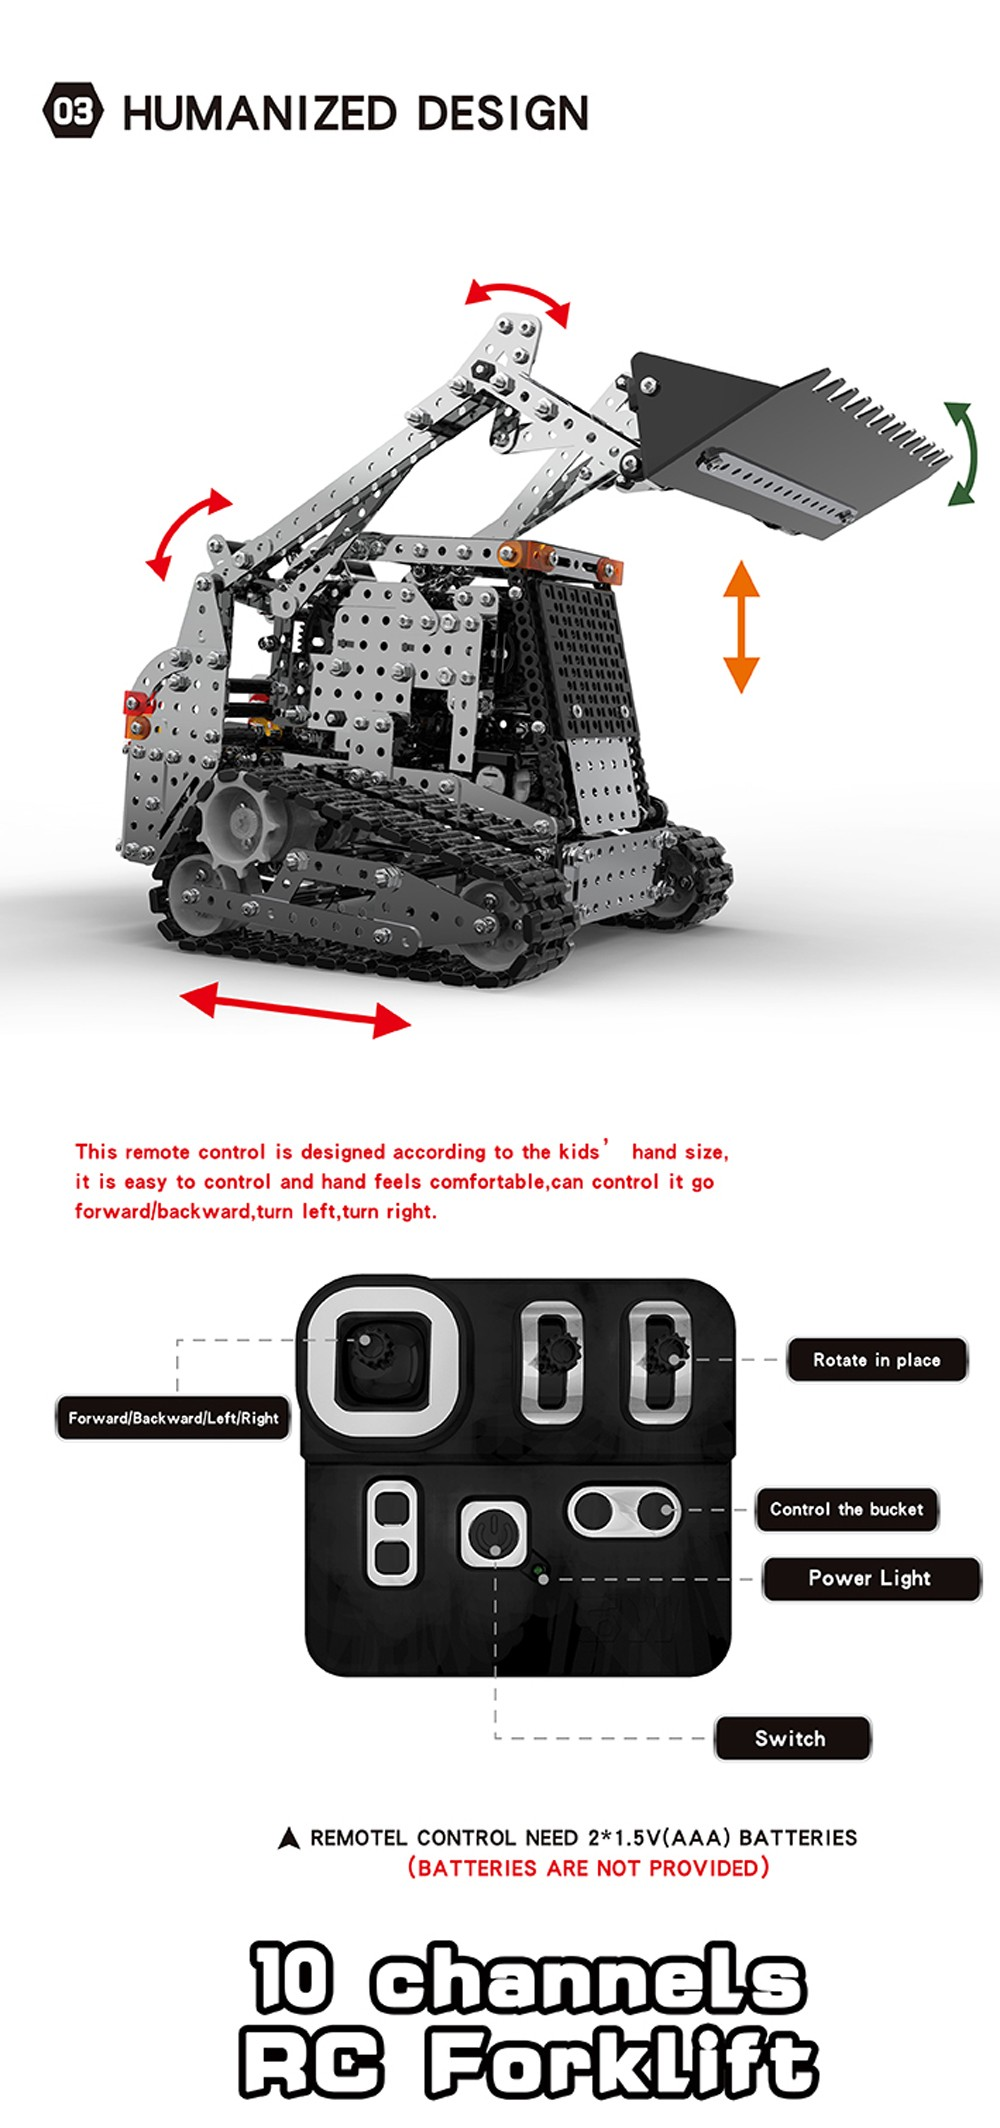 SW(RC)-008 DIY Stainless Steel Assembled 2.4G Remote Control 10-channel Caterpillar Forklift- Platinum